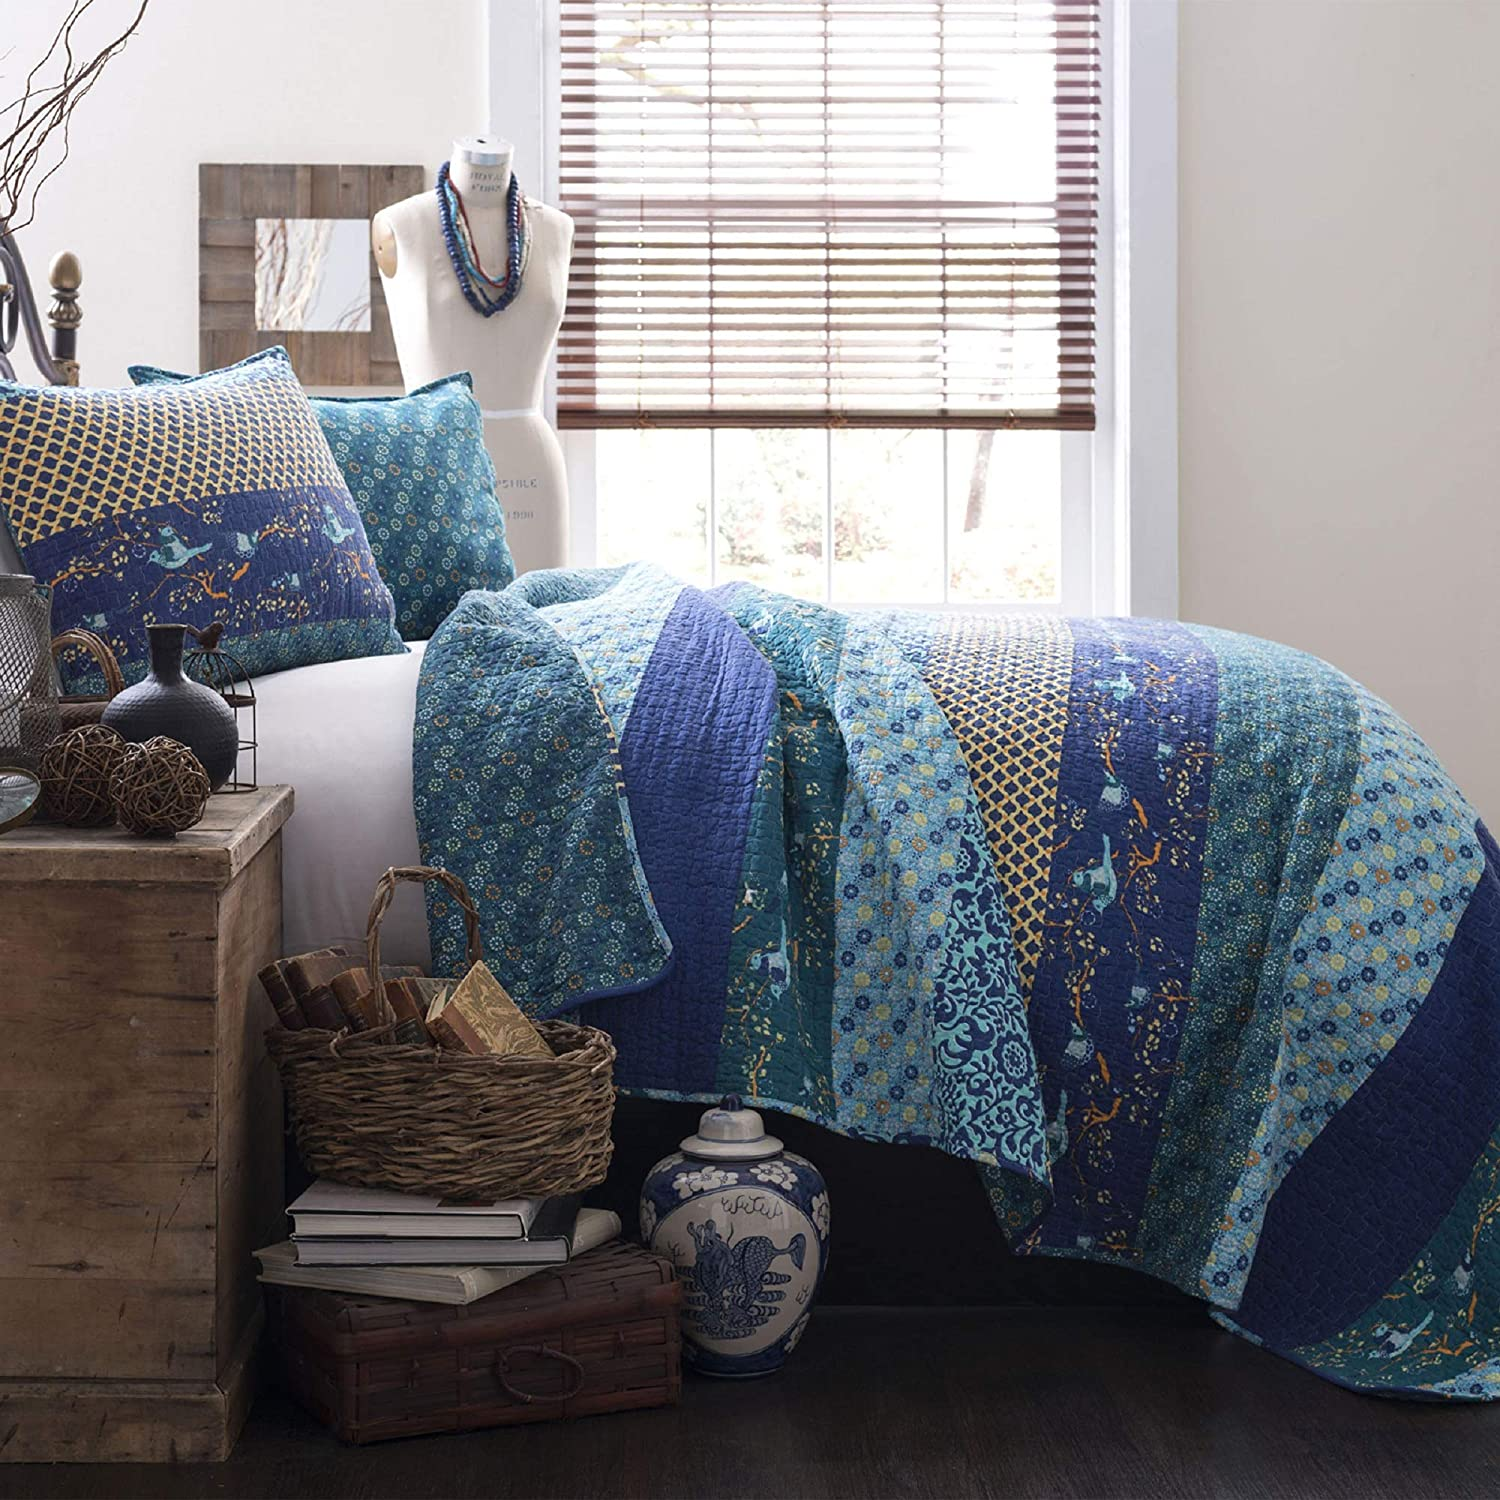 Lush Decor Royal Empire Quilt Striped Pattern Reversible 3 Piece Bedding Set, King, Peacock